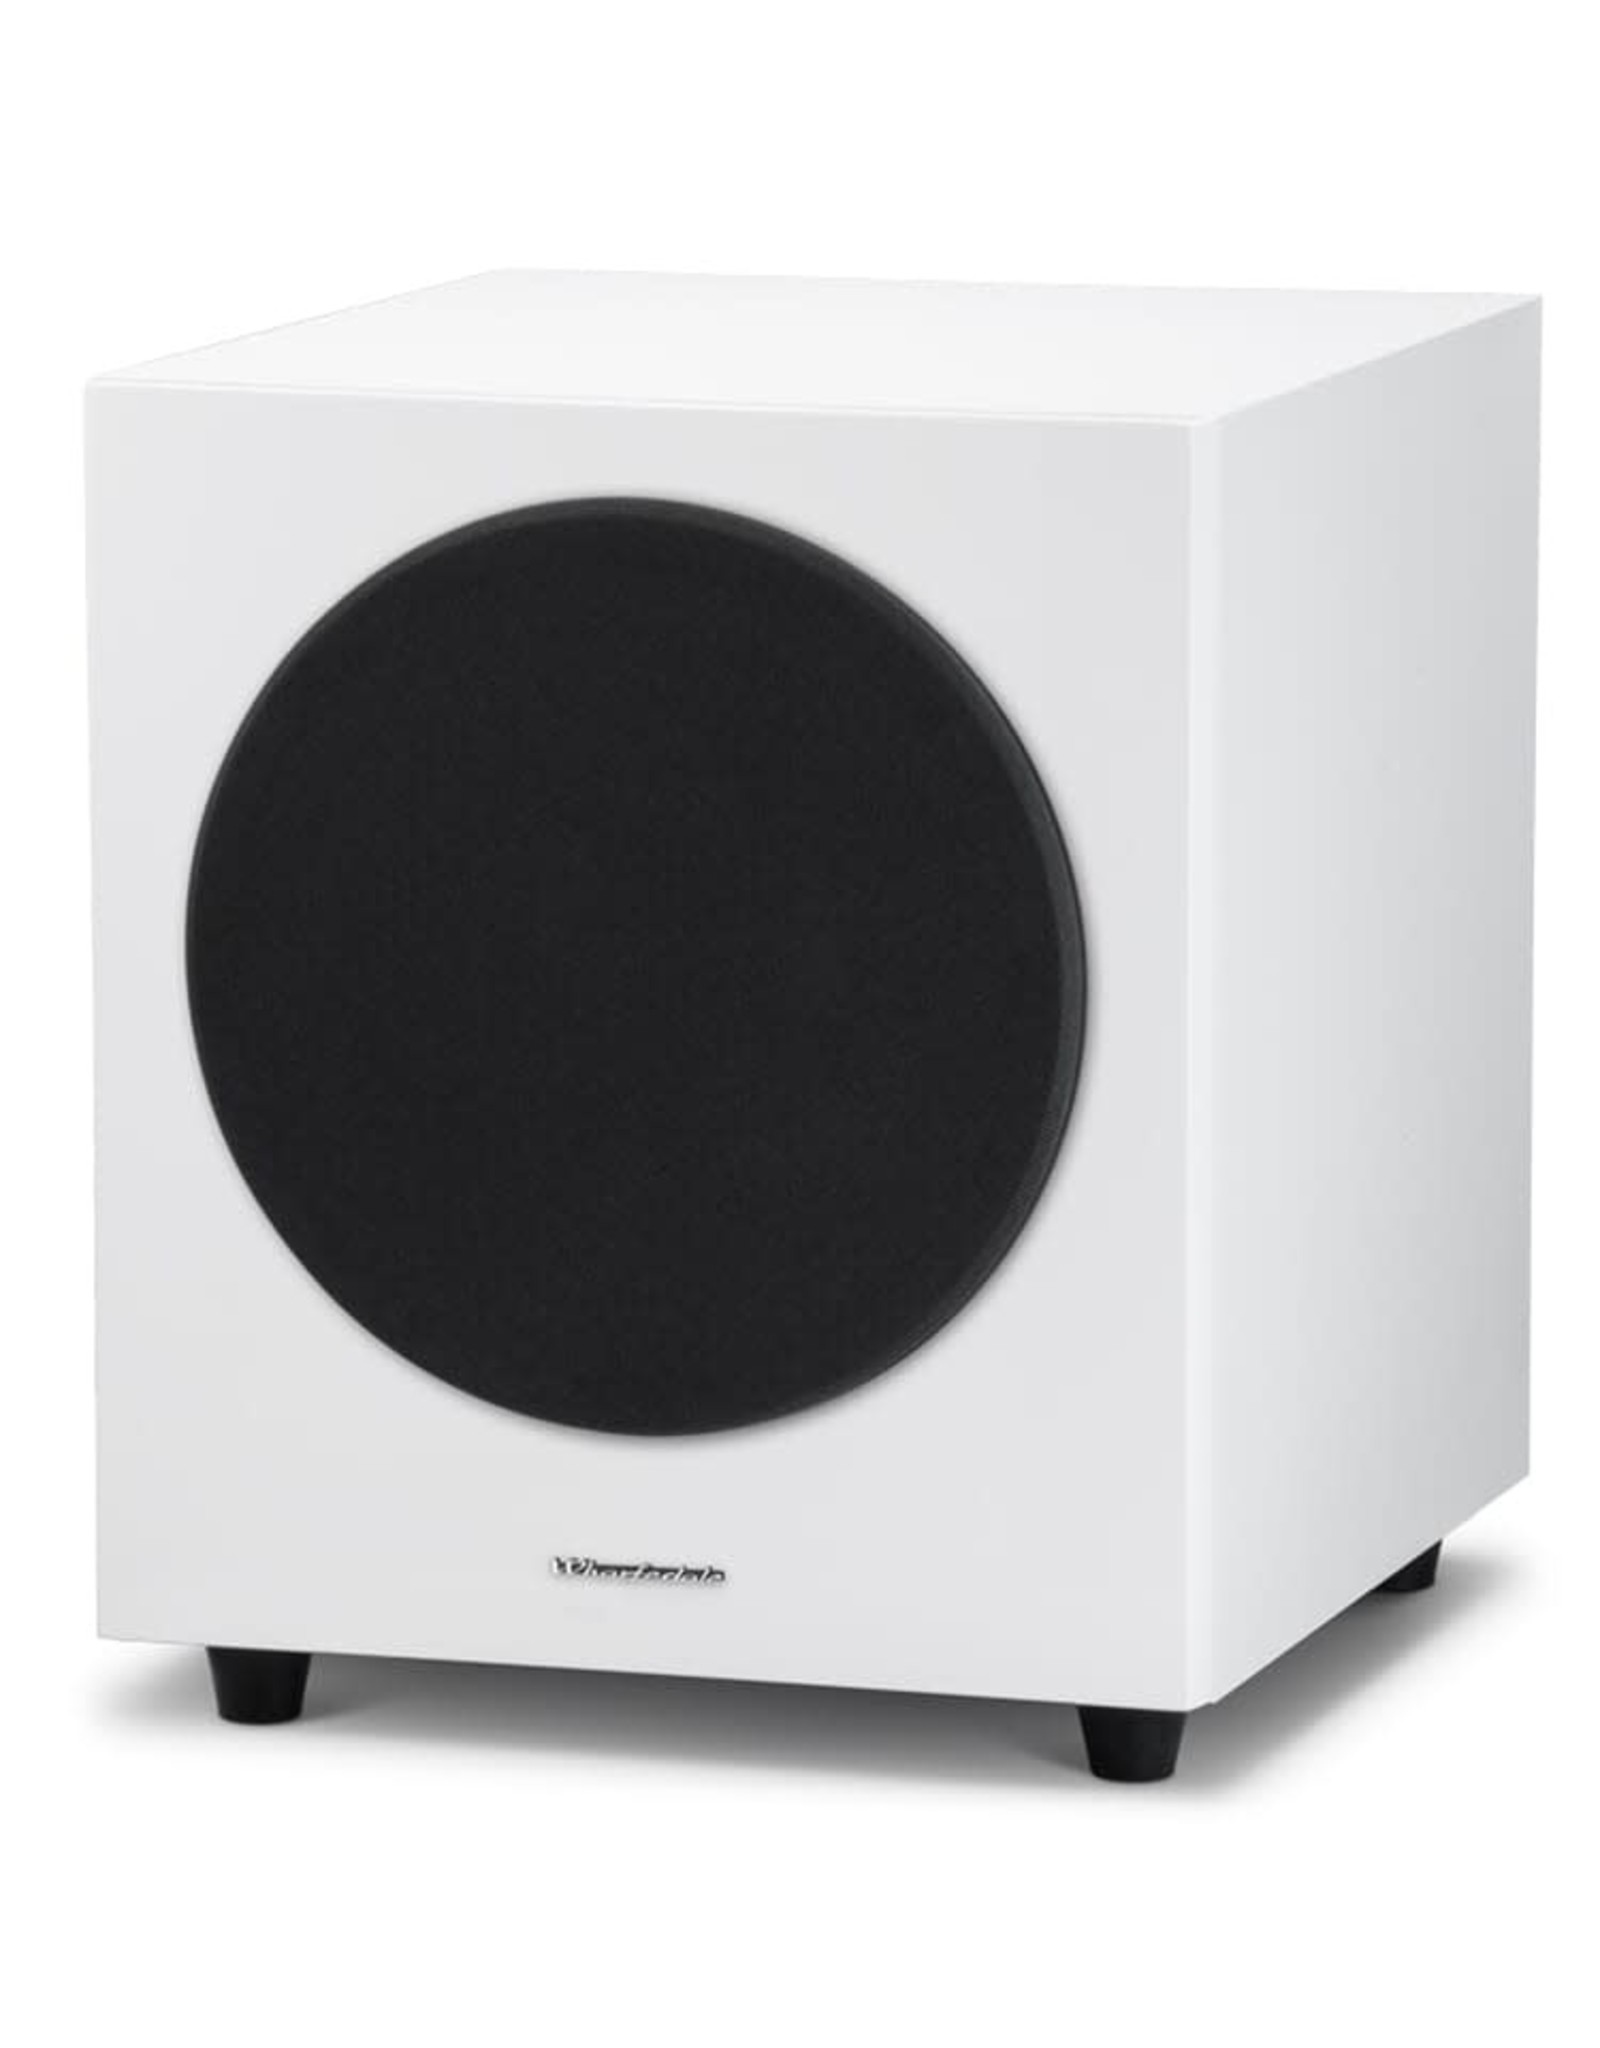 Wharfedale Wharfedale WH-D10 Subwoofer